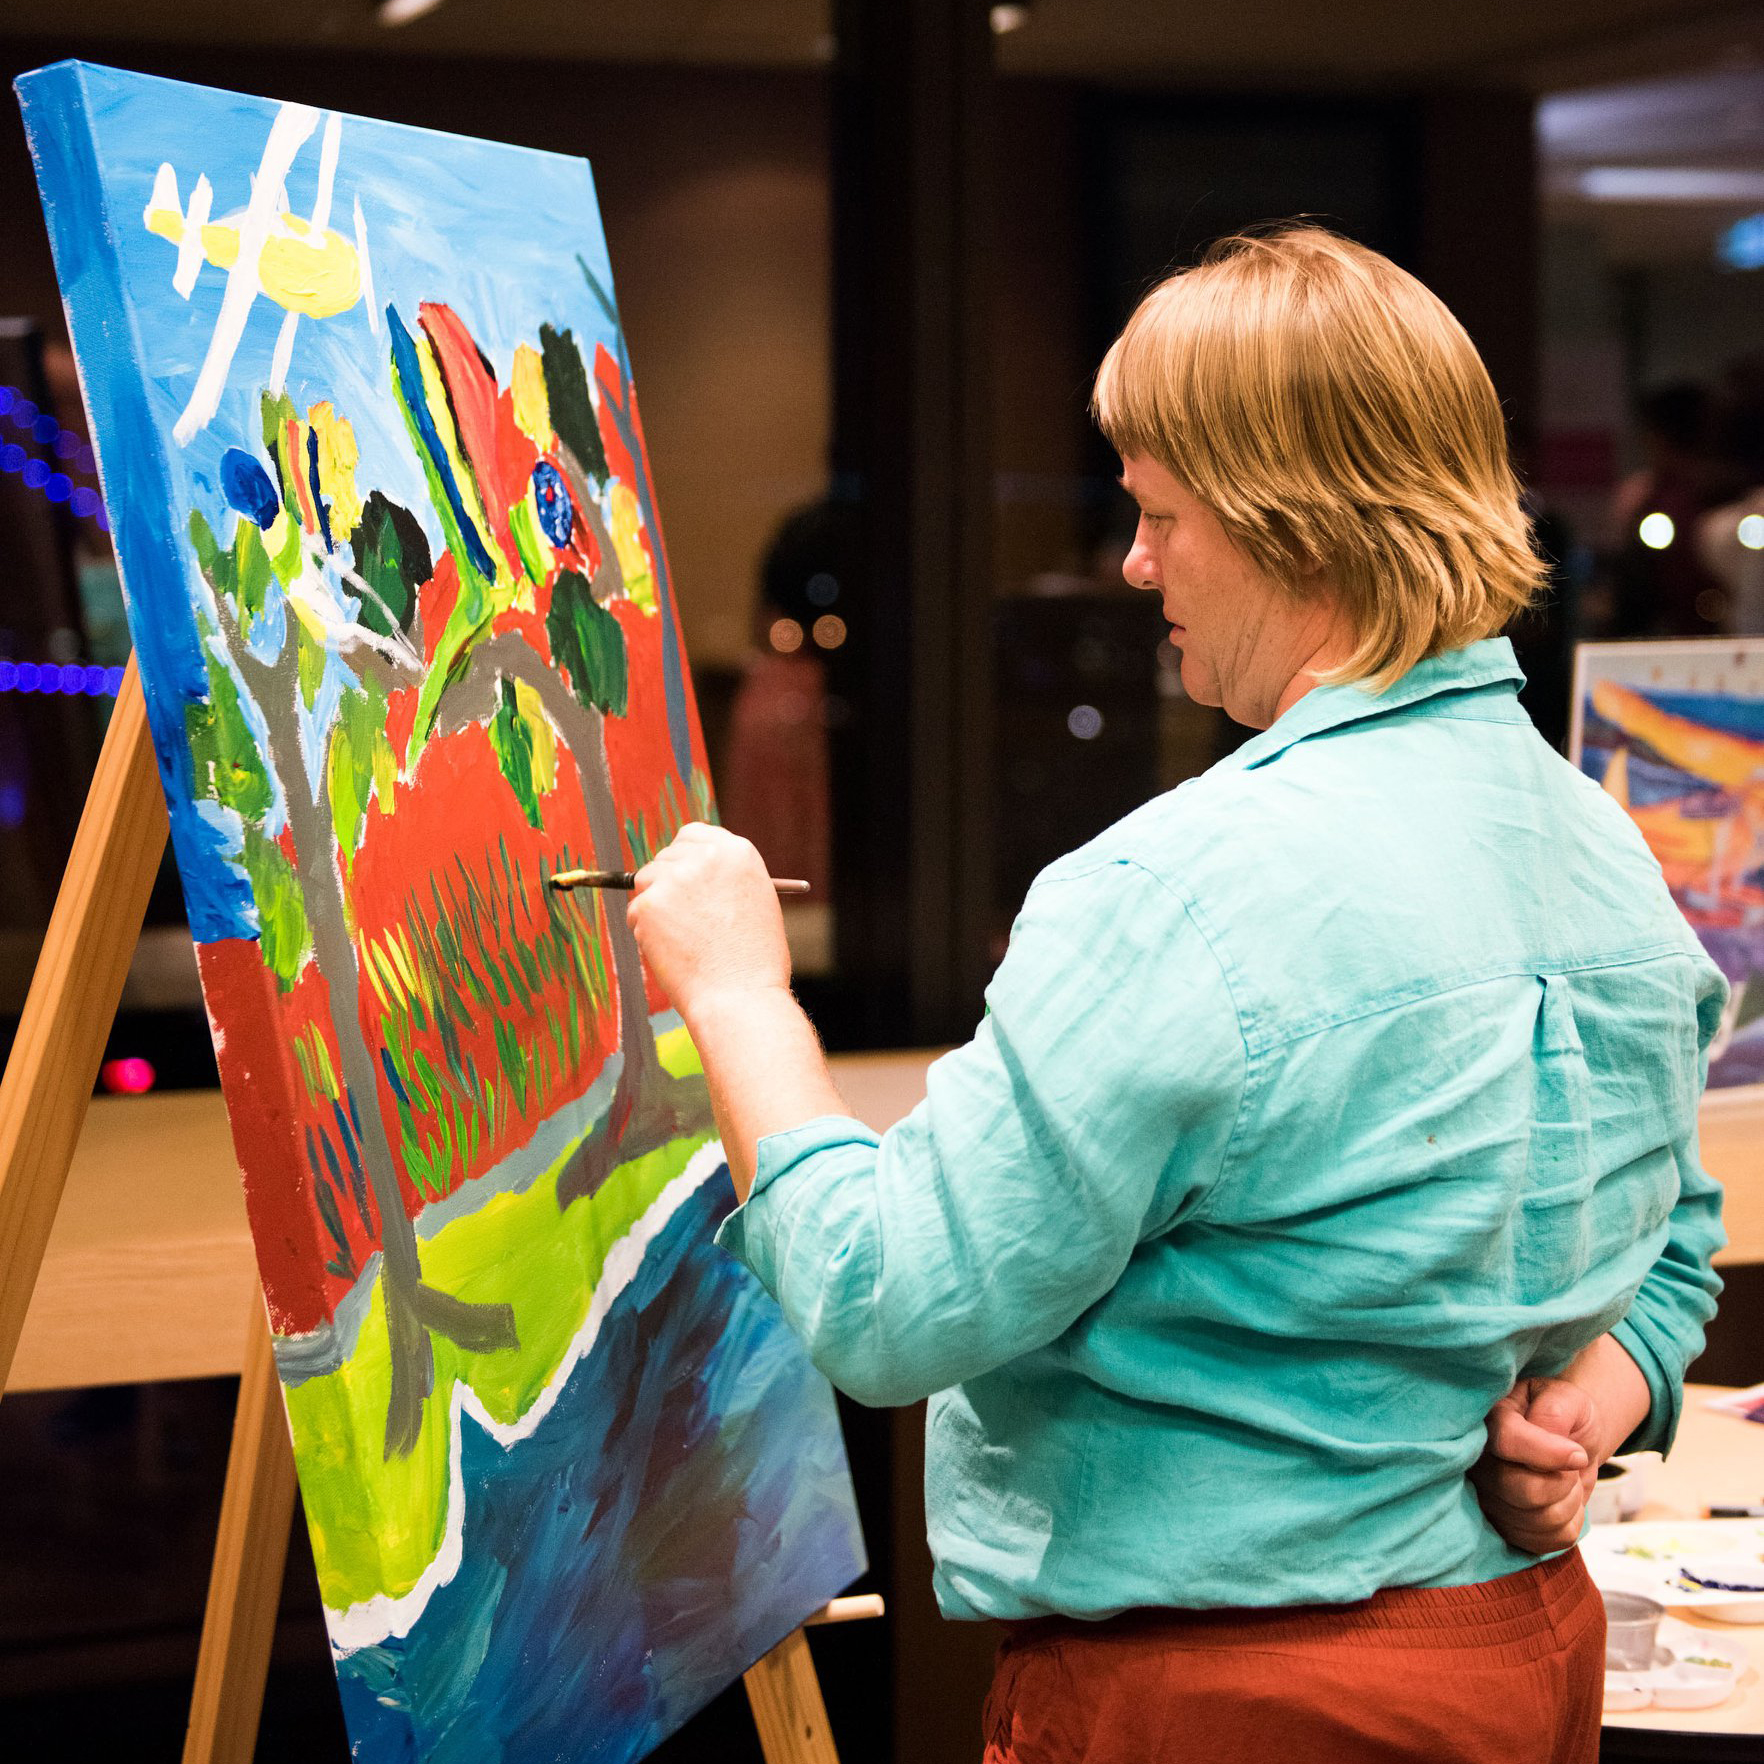 Artist Belinda Peel painting a canvas